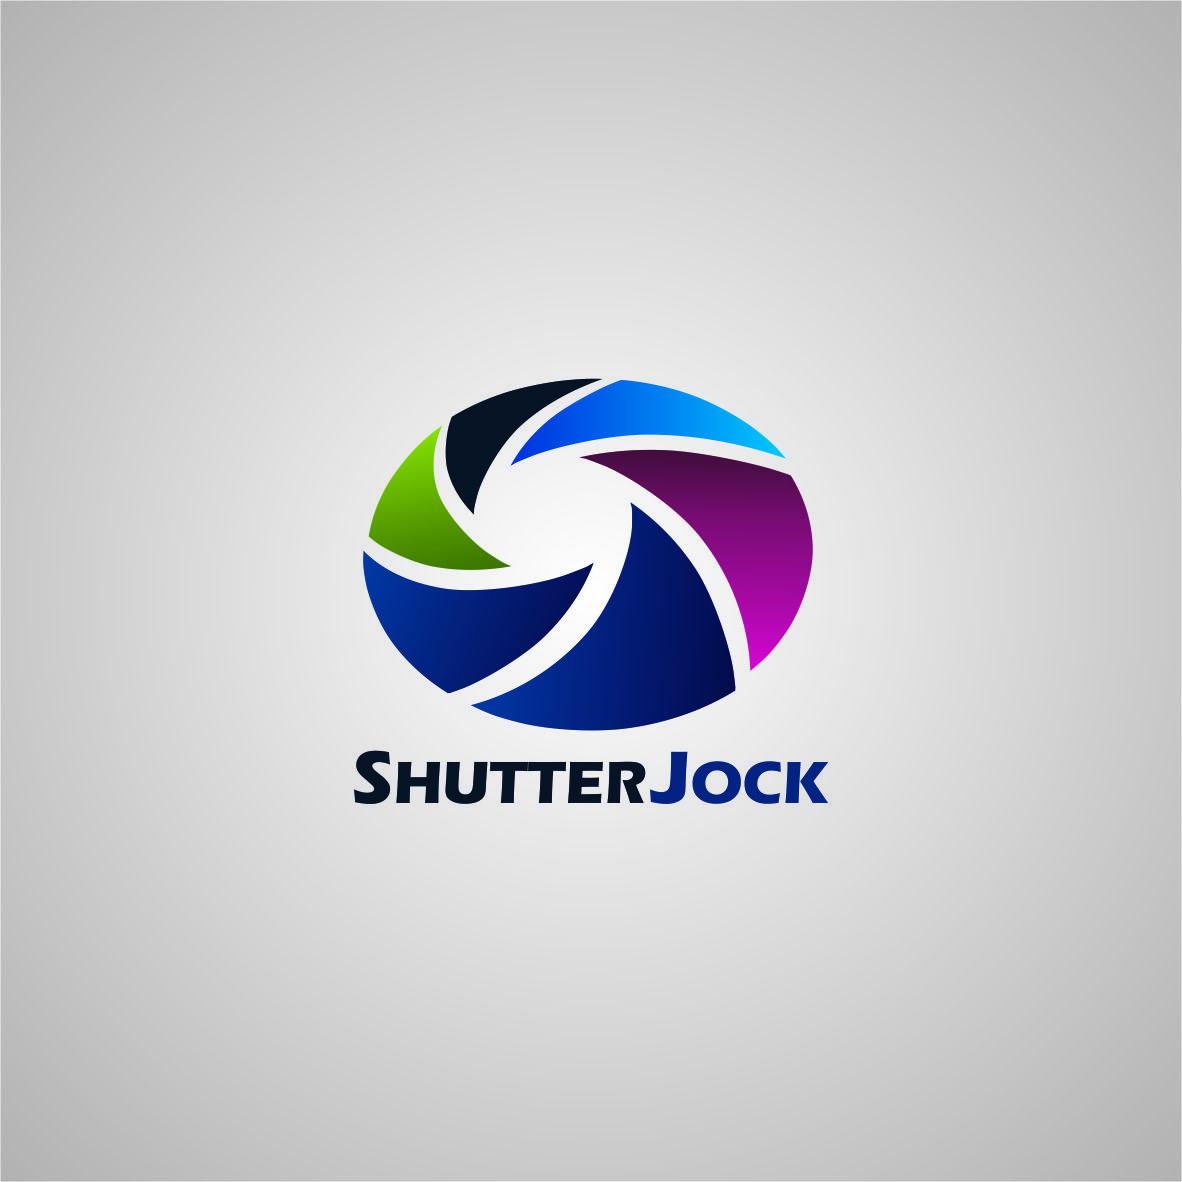 Logo Design by arteo_design - Entry No. 83 in the Logo Design Contest Unique Logo Design Wanted for Shutterjock LLC.